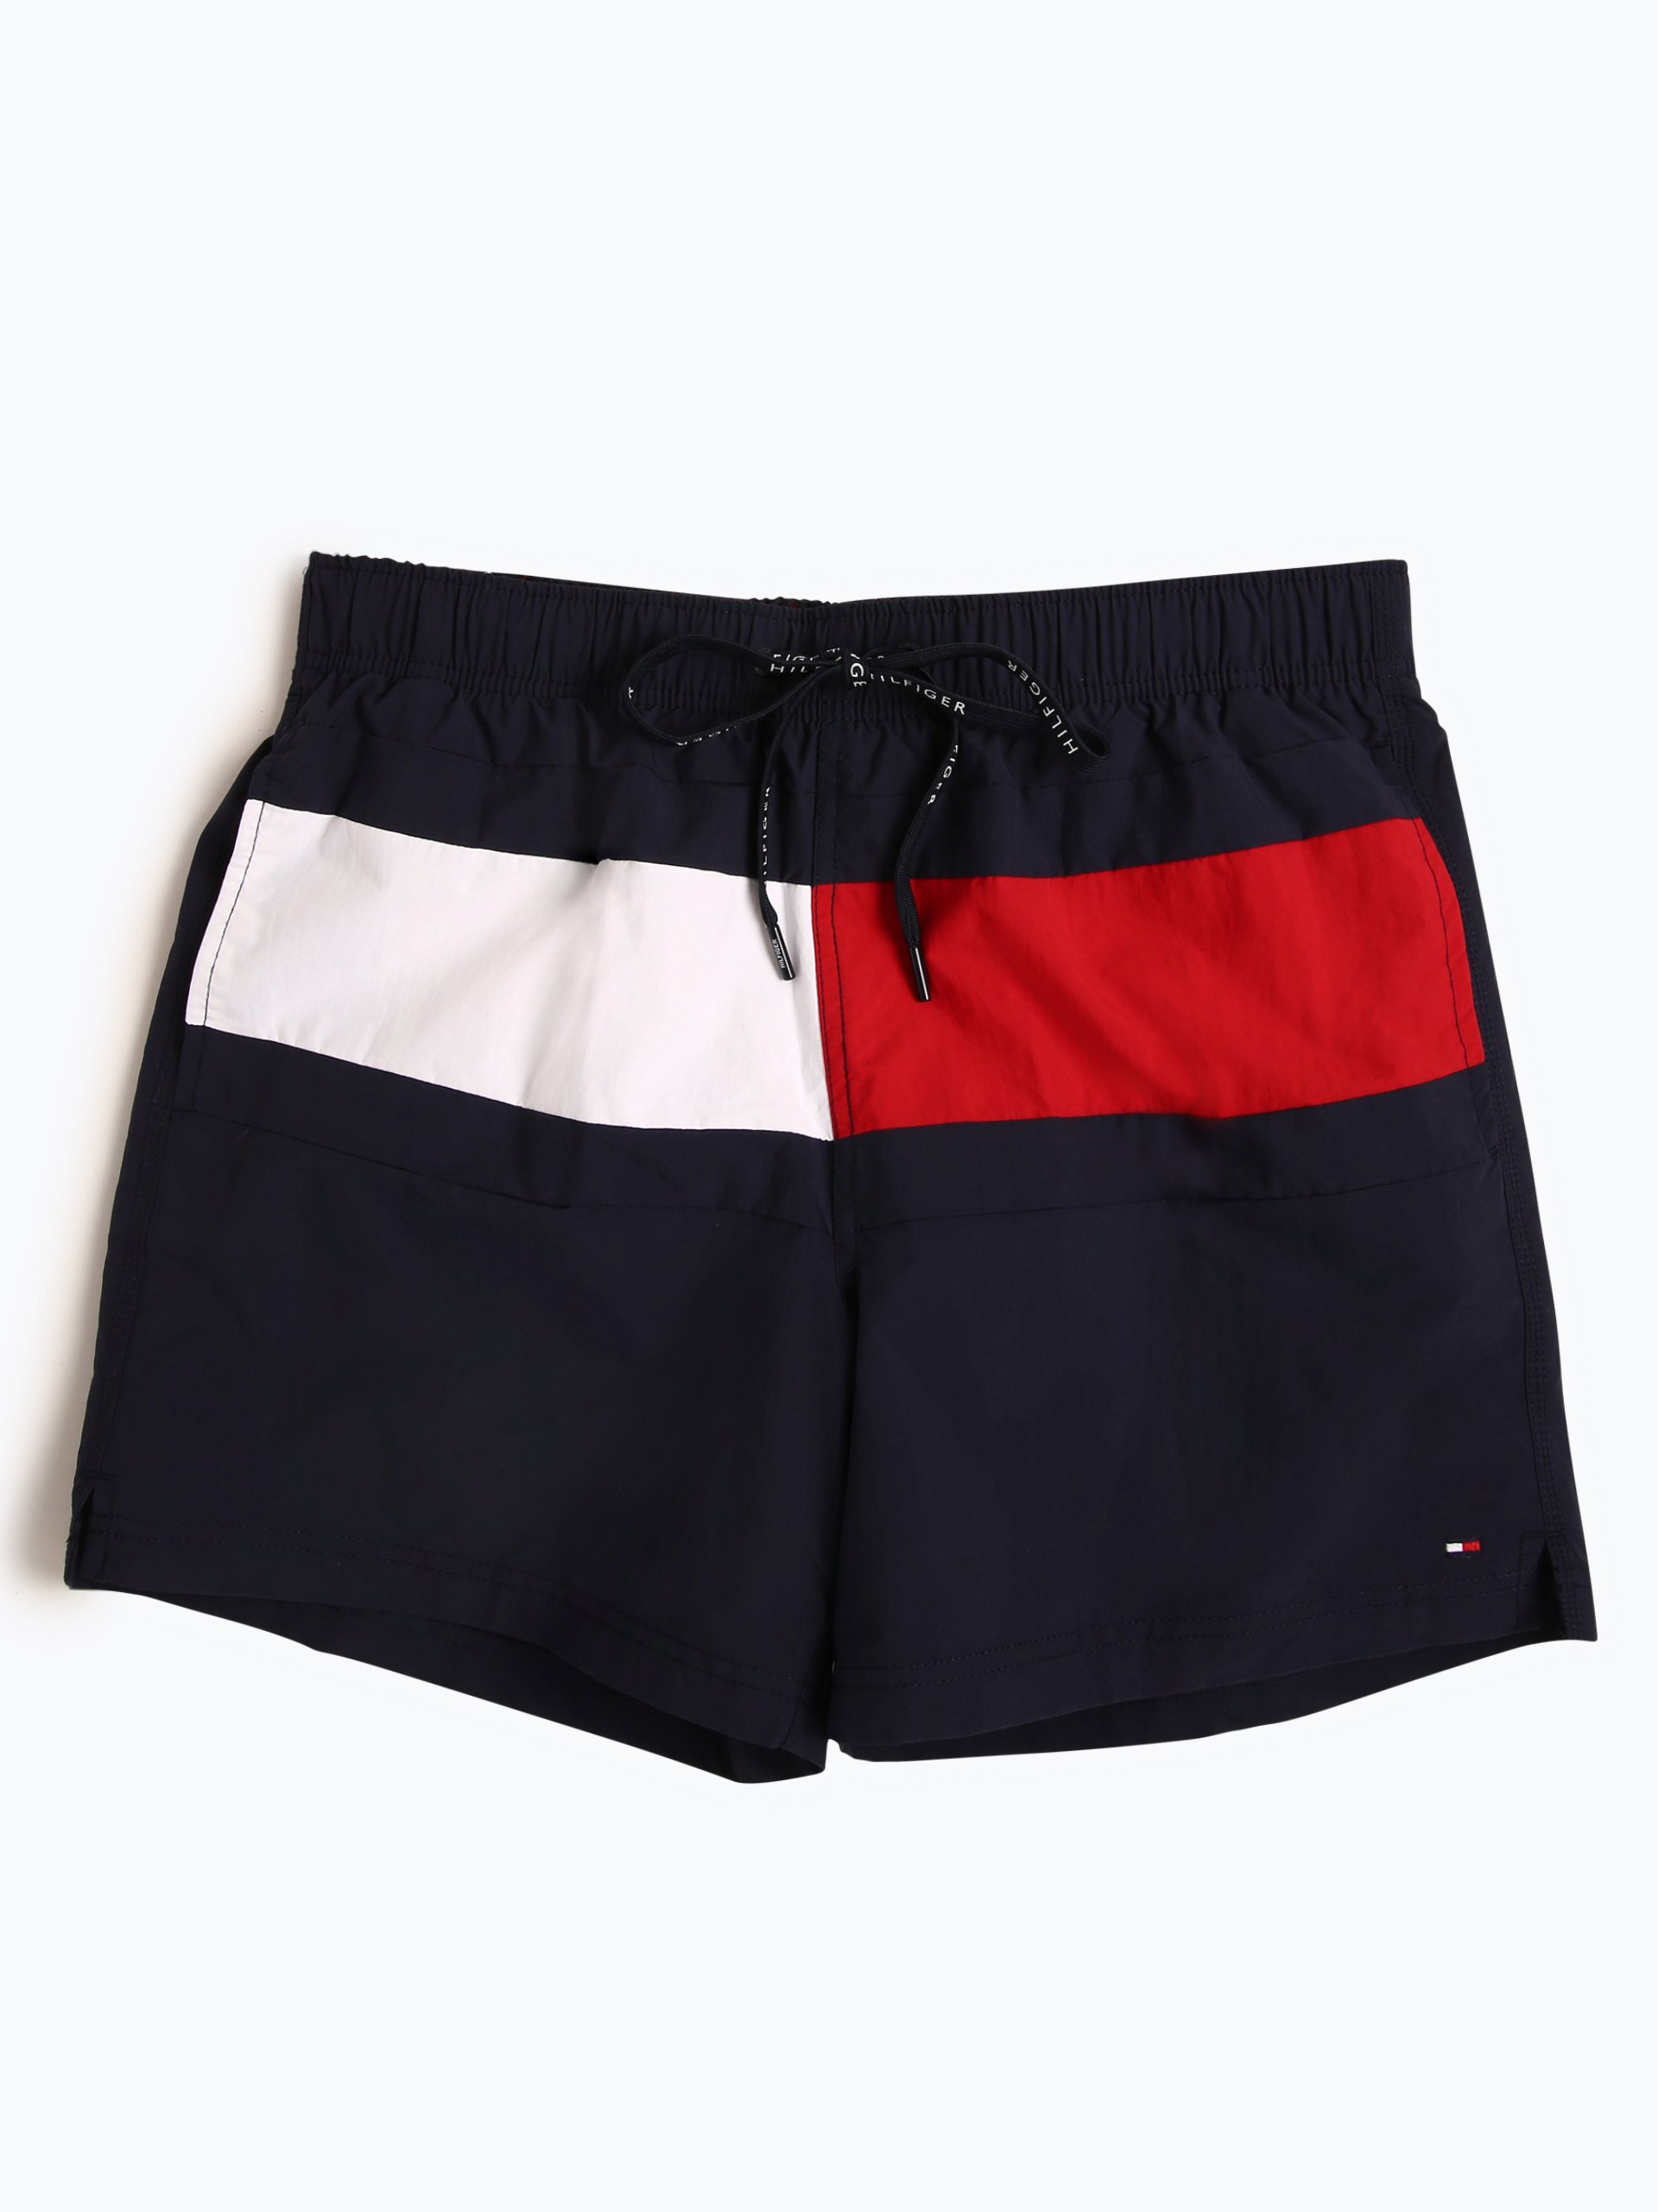 tommy hilfiger herren badeshorts marine gestreift online. Black Bedroom Furniture Sets. Home Design Ideas